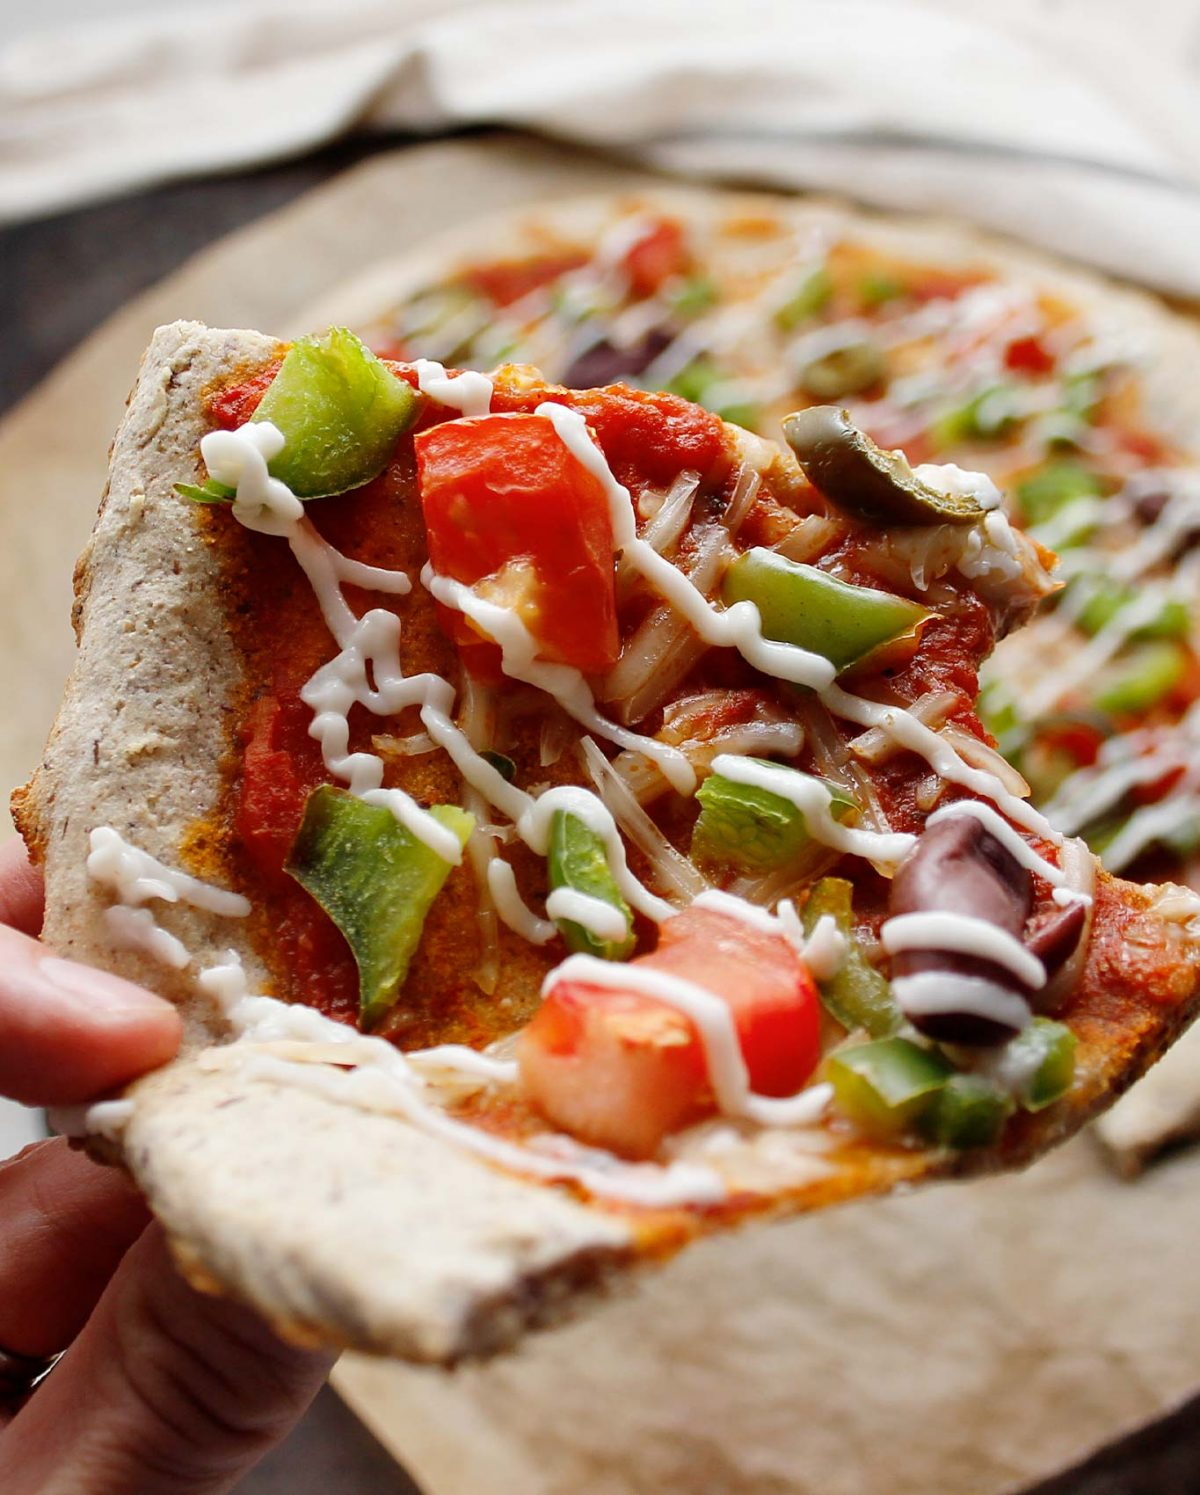 The thicker pizza crust edge makes it just right to hold and enjoy!